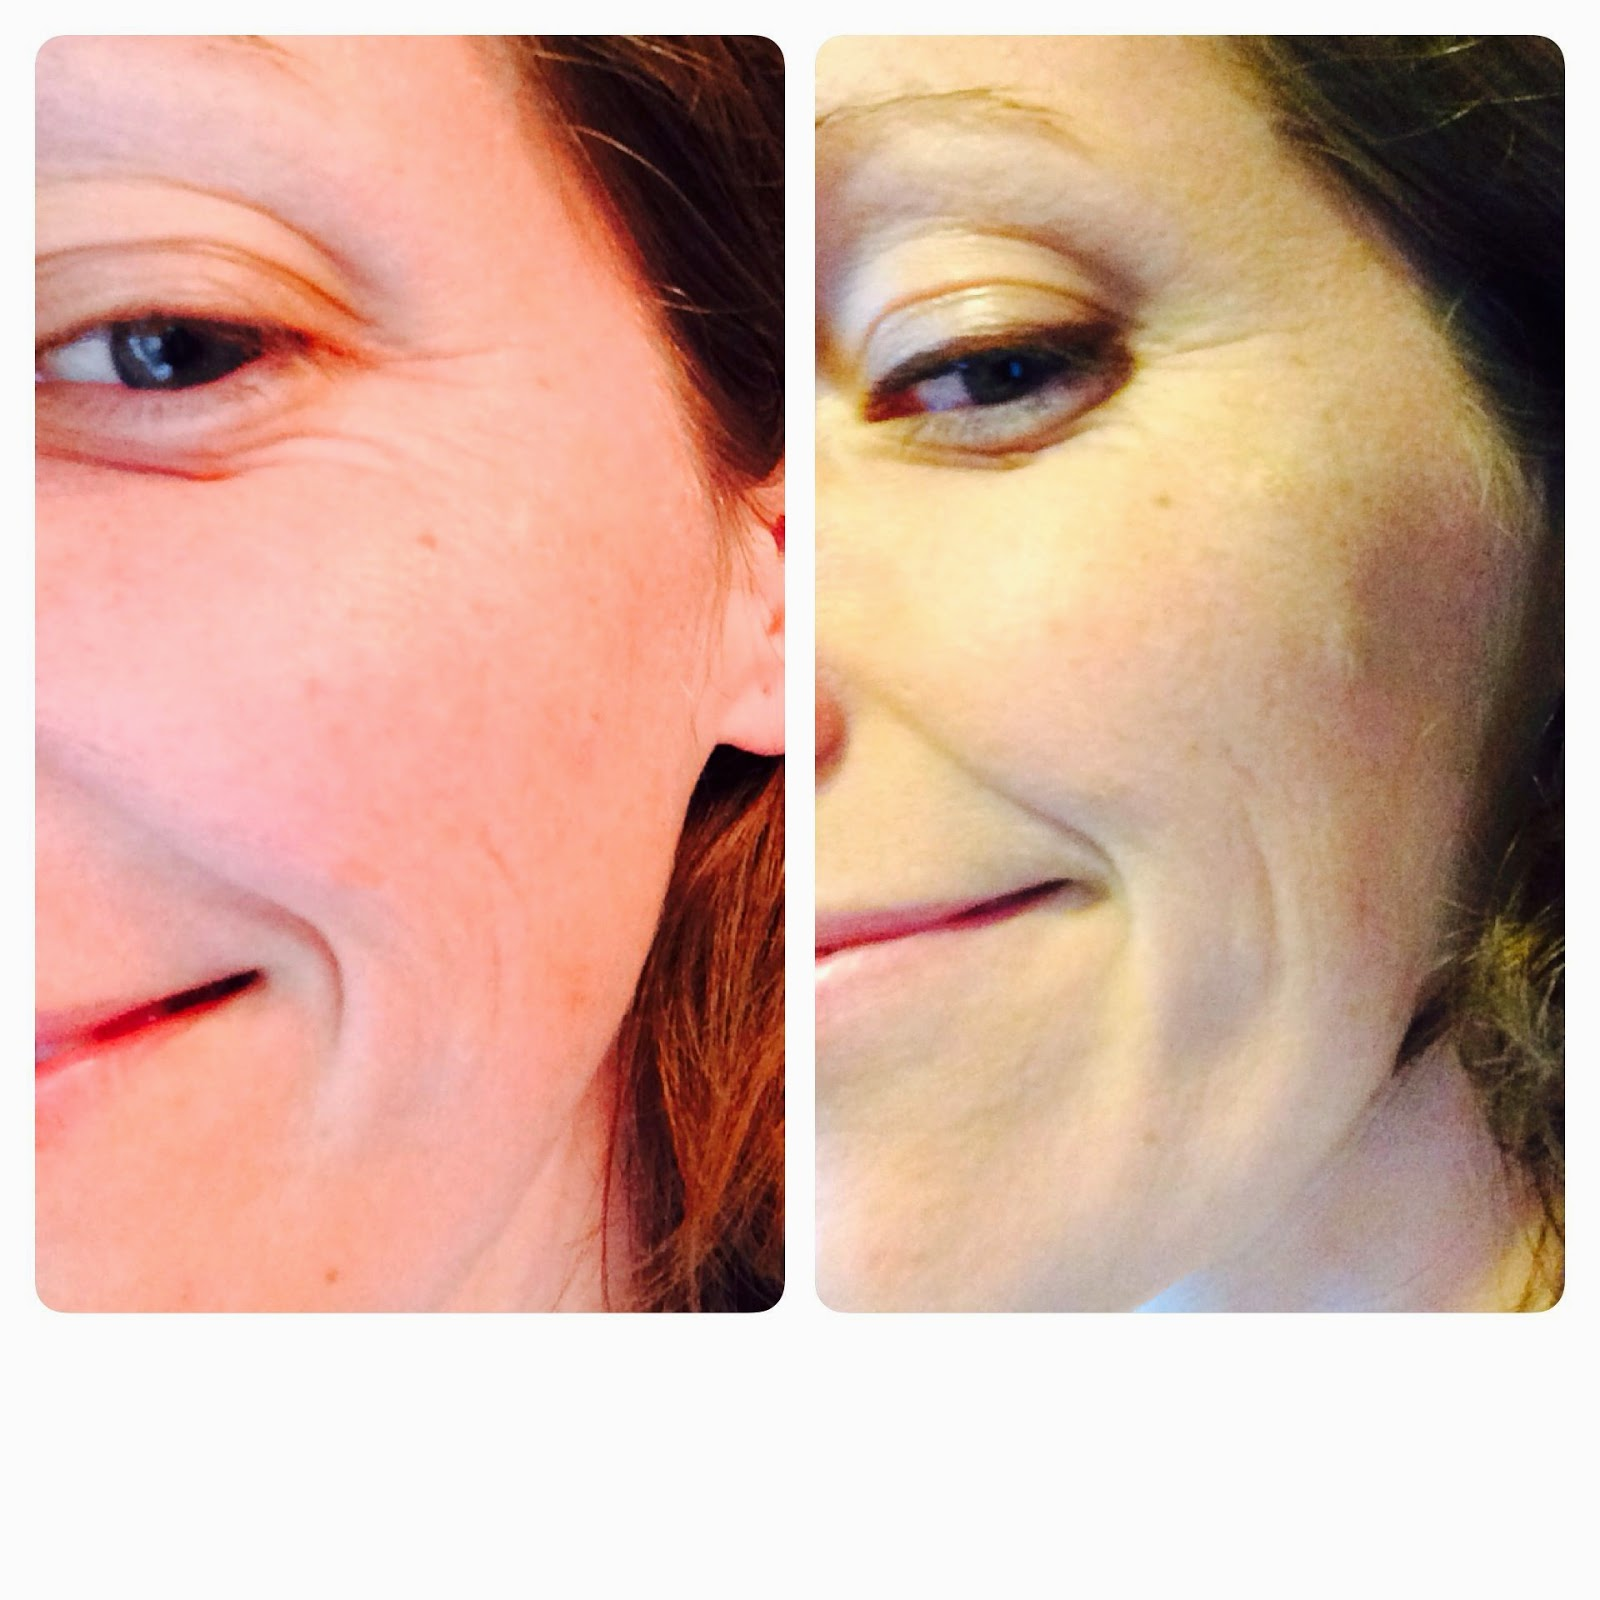 #AvonAnew express wrinkle smoother before and after